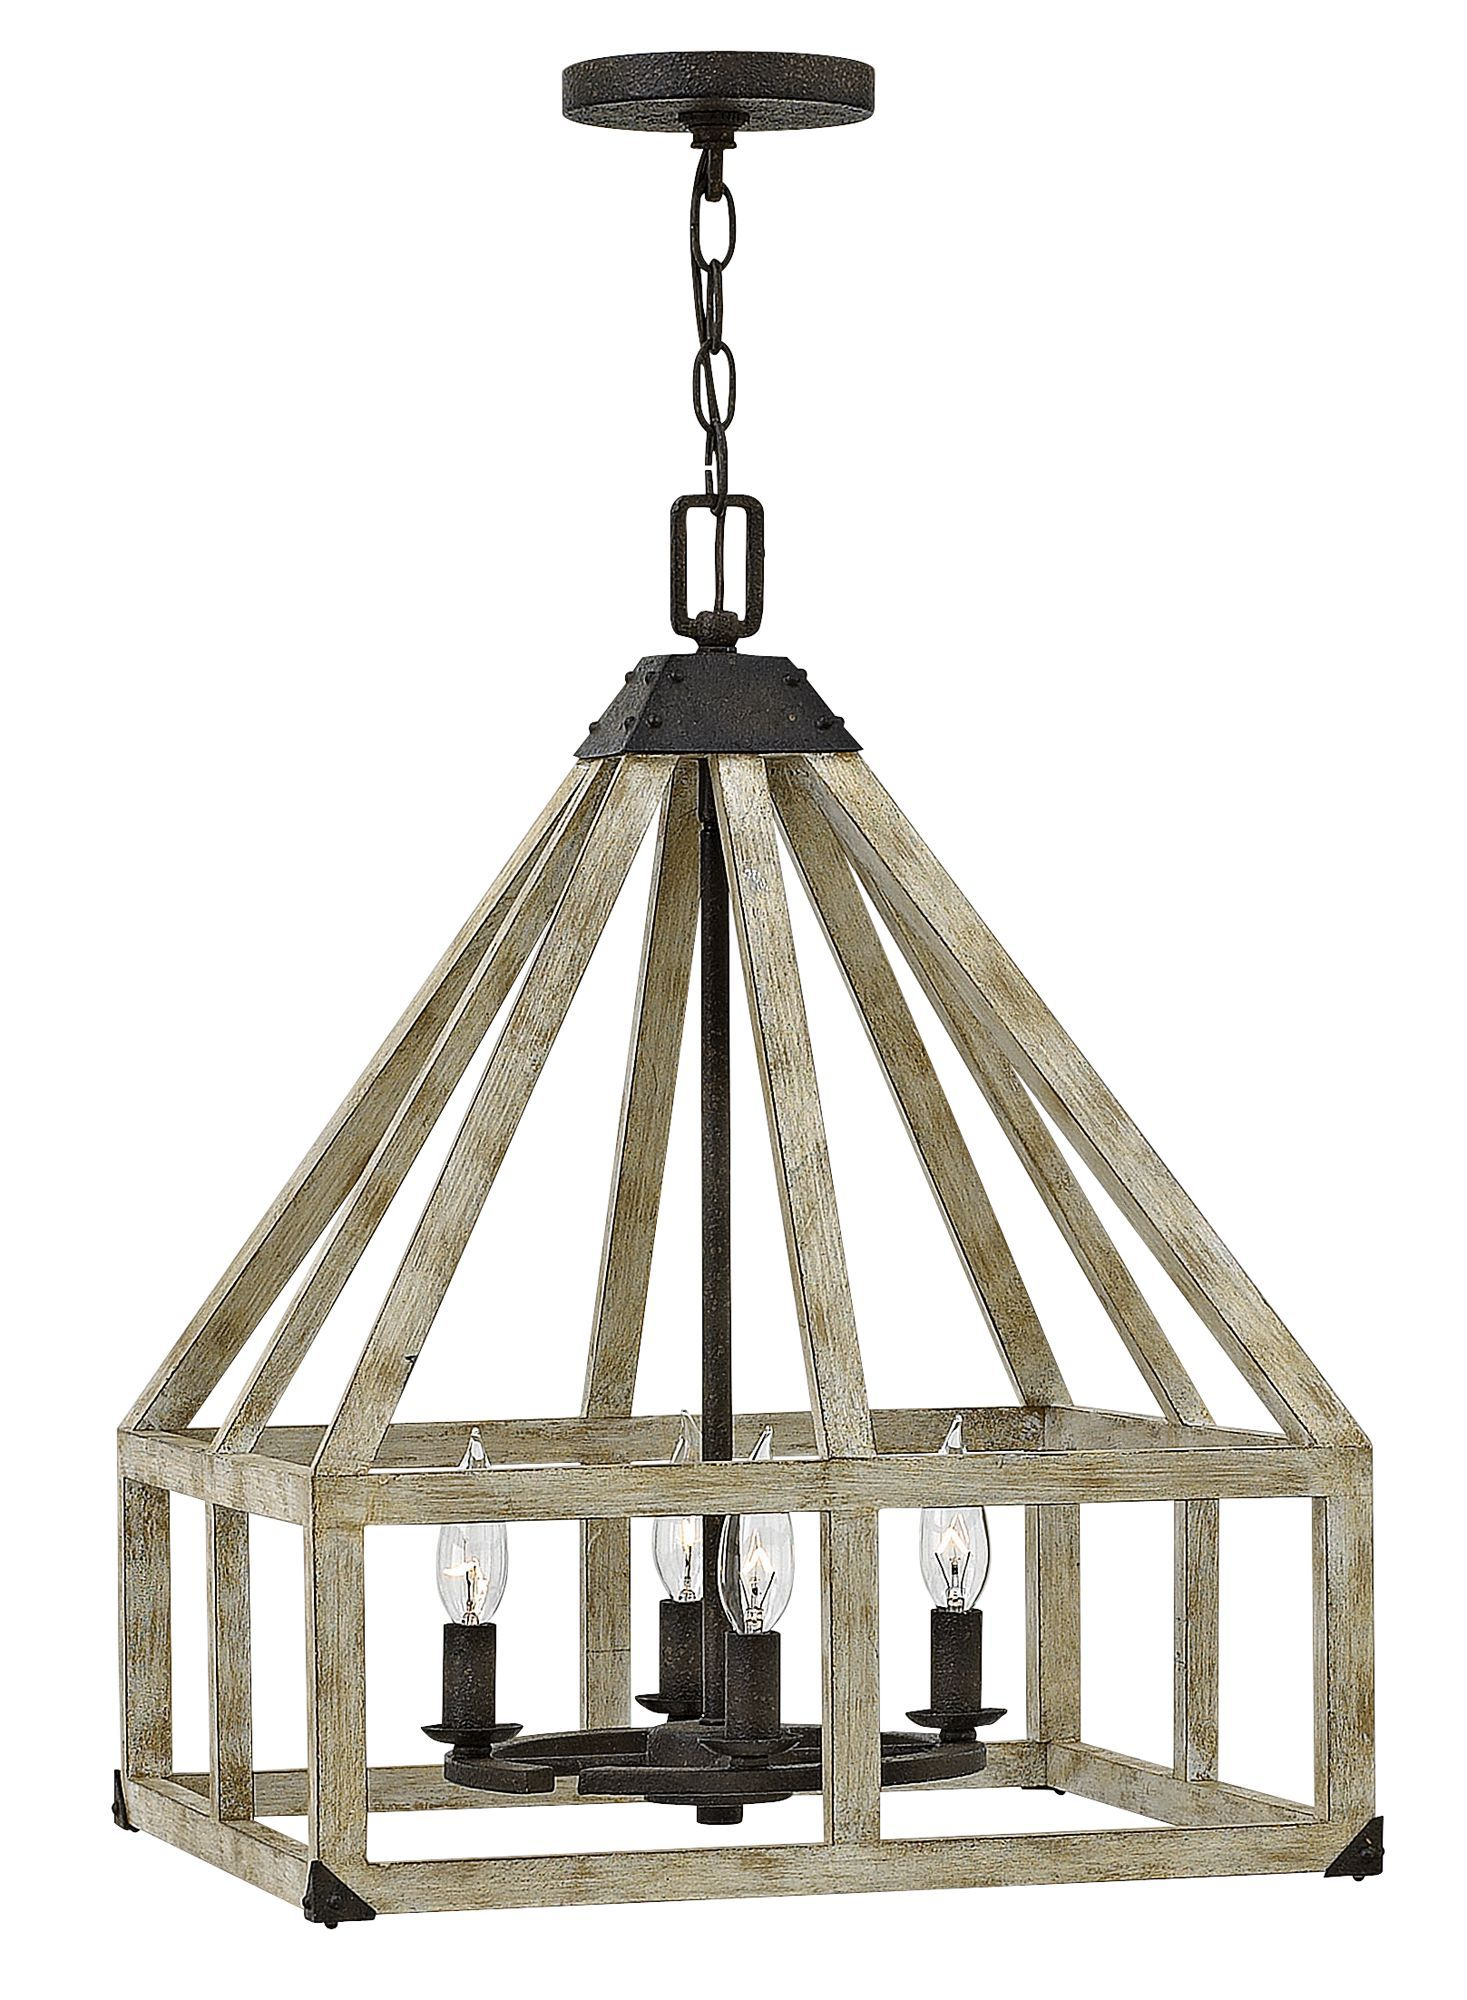 rustic lighting fixtures. rustic lighting fixtures b